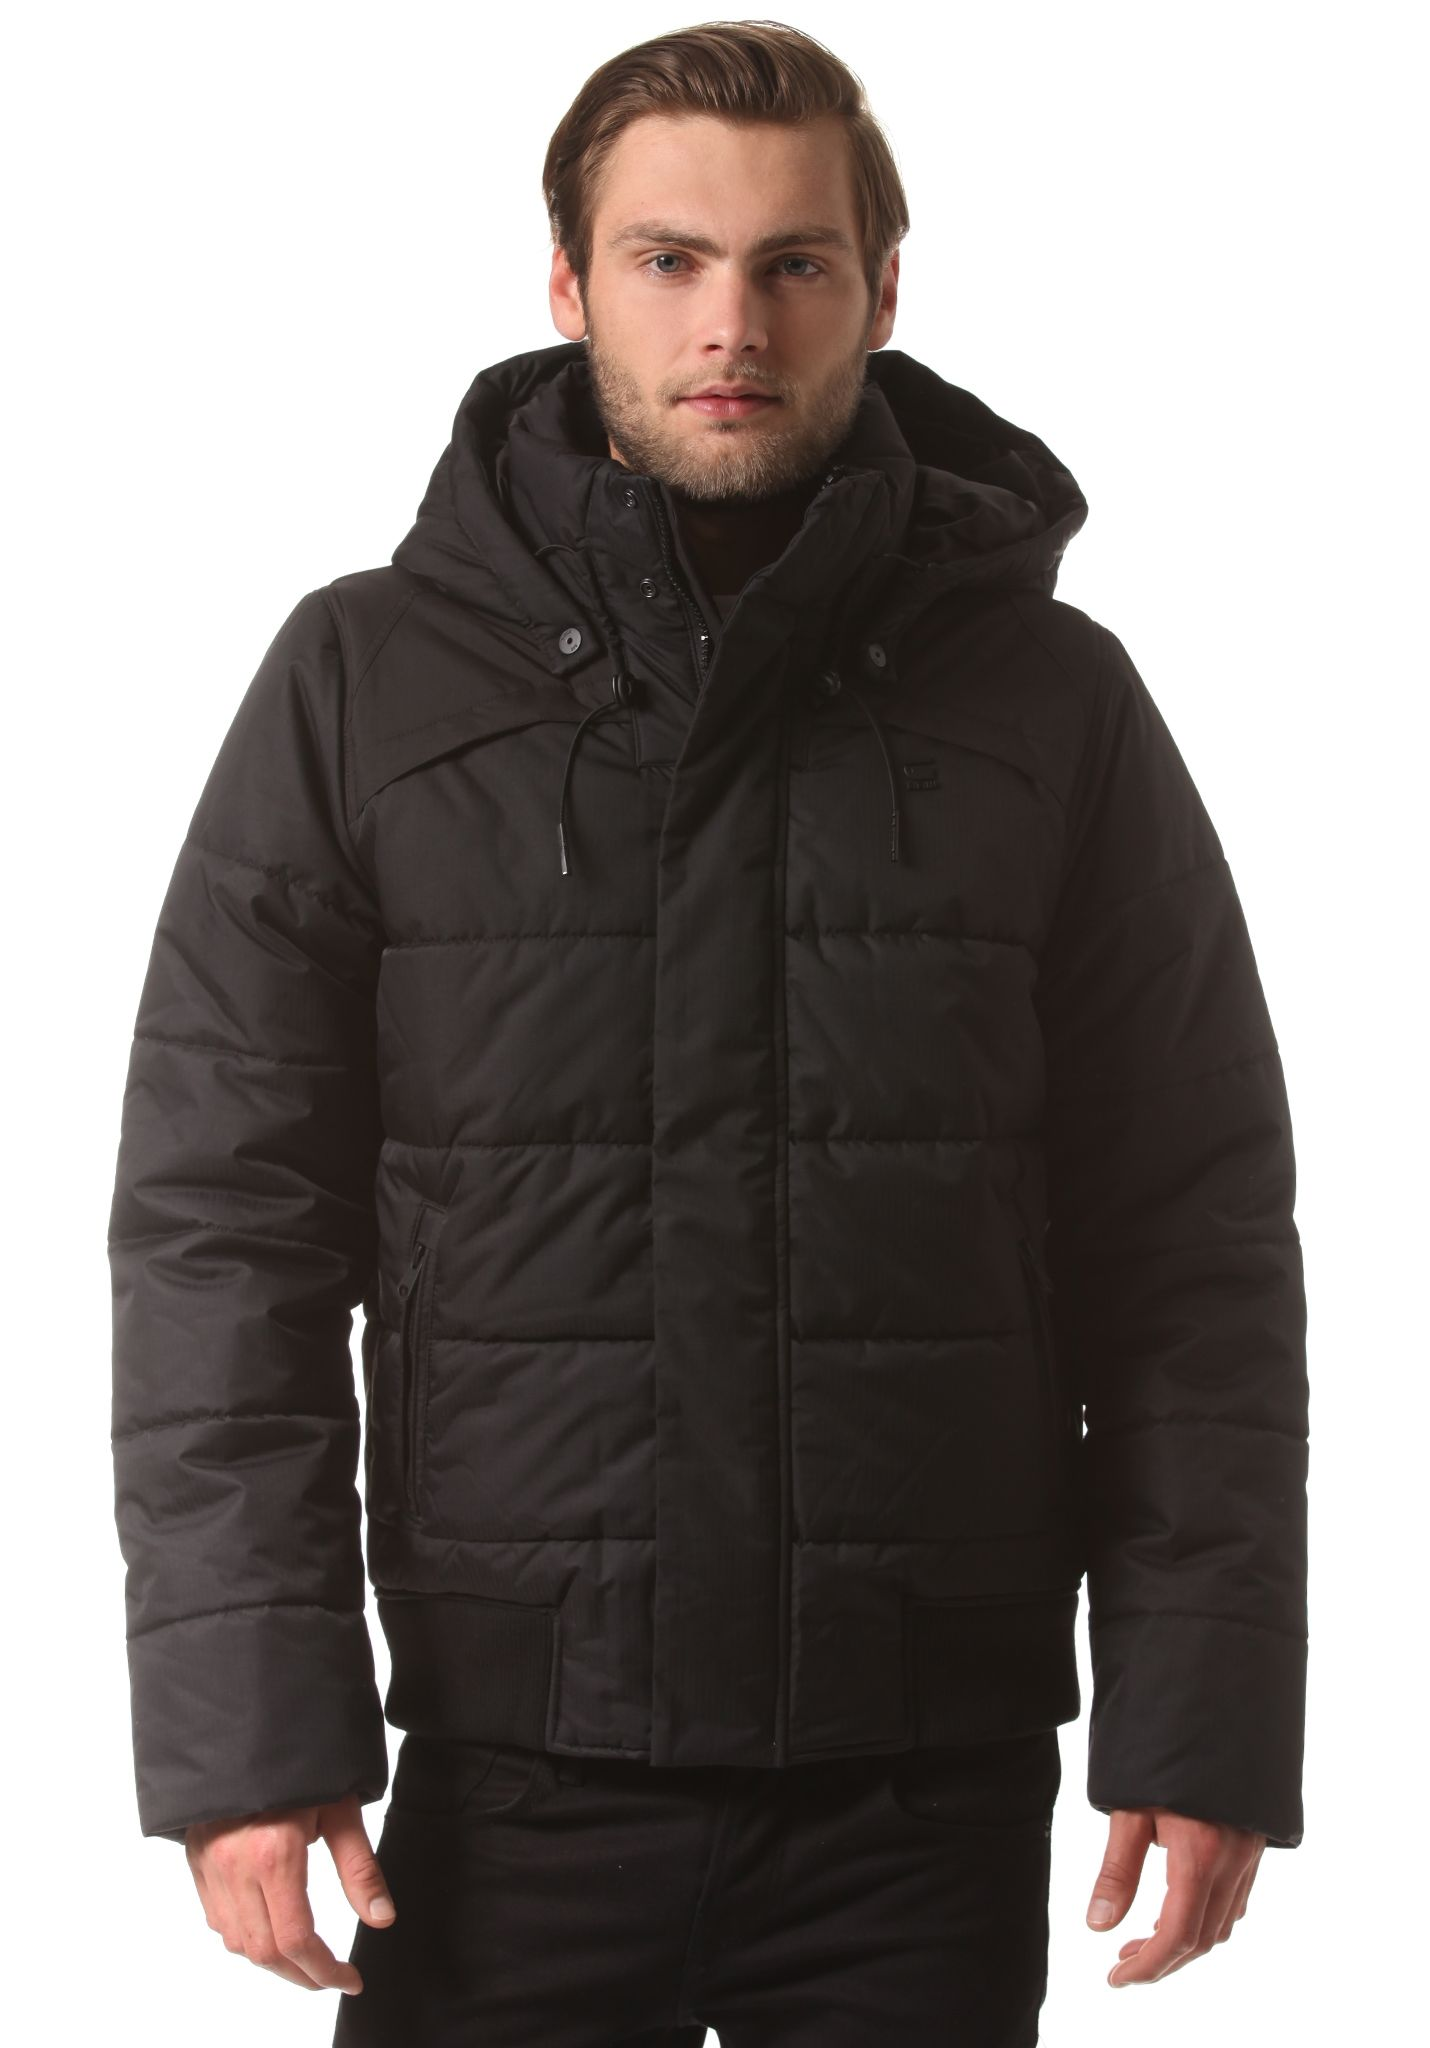 Schwarz Für Bomber Hdd Whistler Star Herren Sports G Planet Raw Jacke Iq78UAqYw